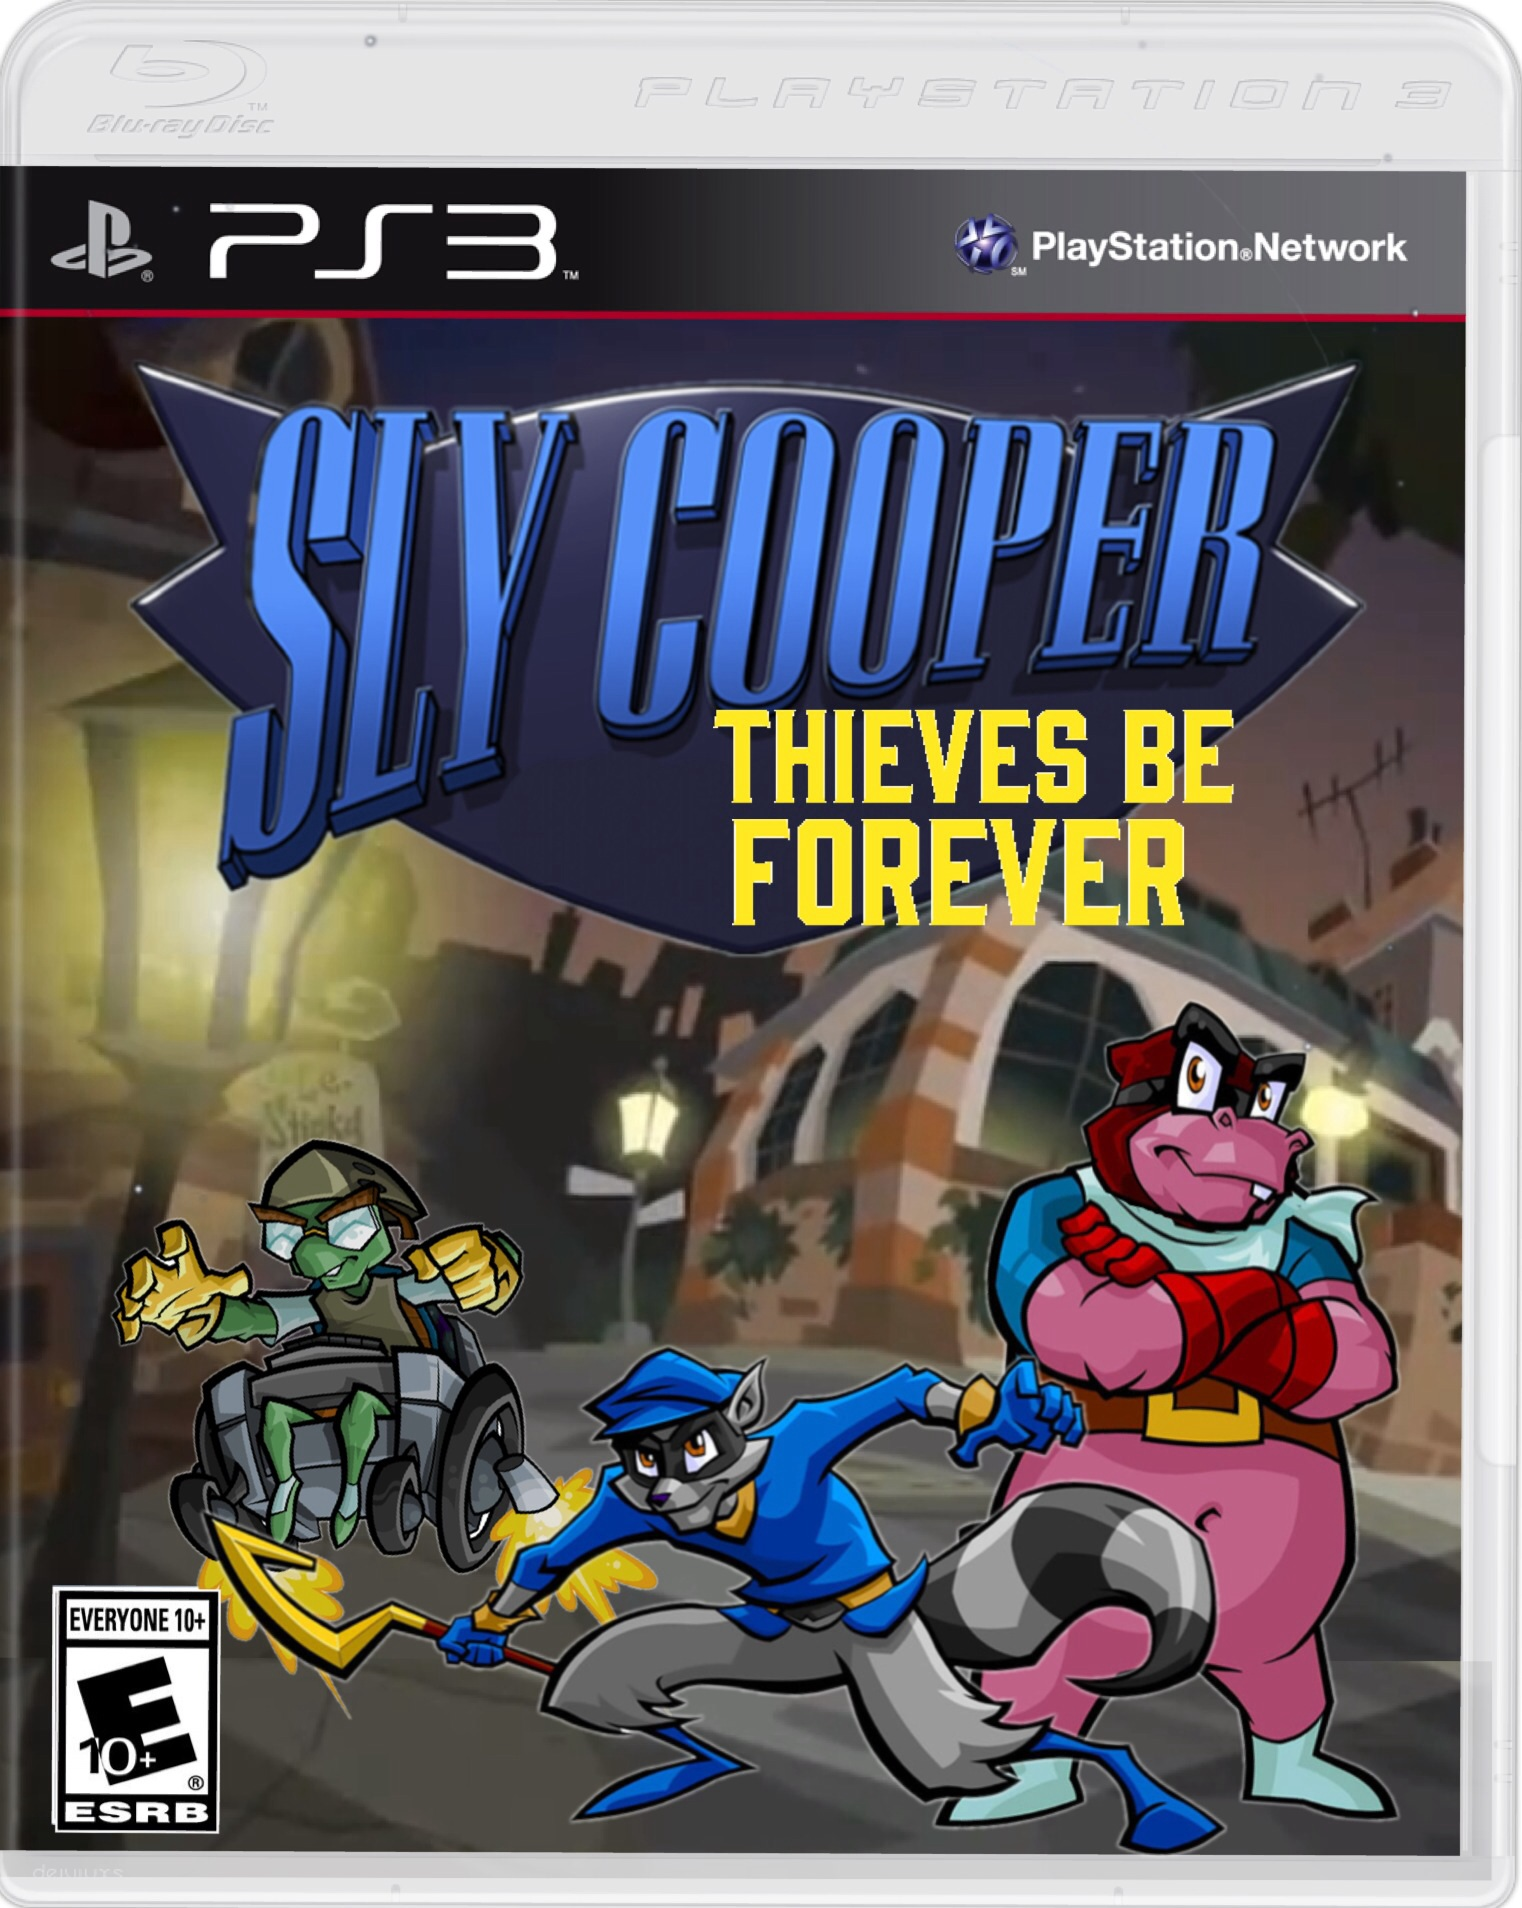 Sly Cooper 5 Thieves Be Forever Sly Cooper Fan Fiction